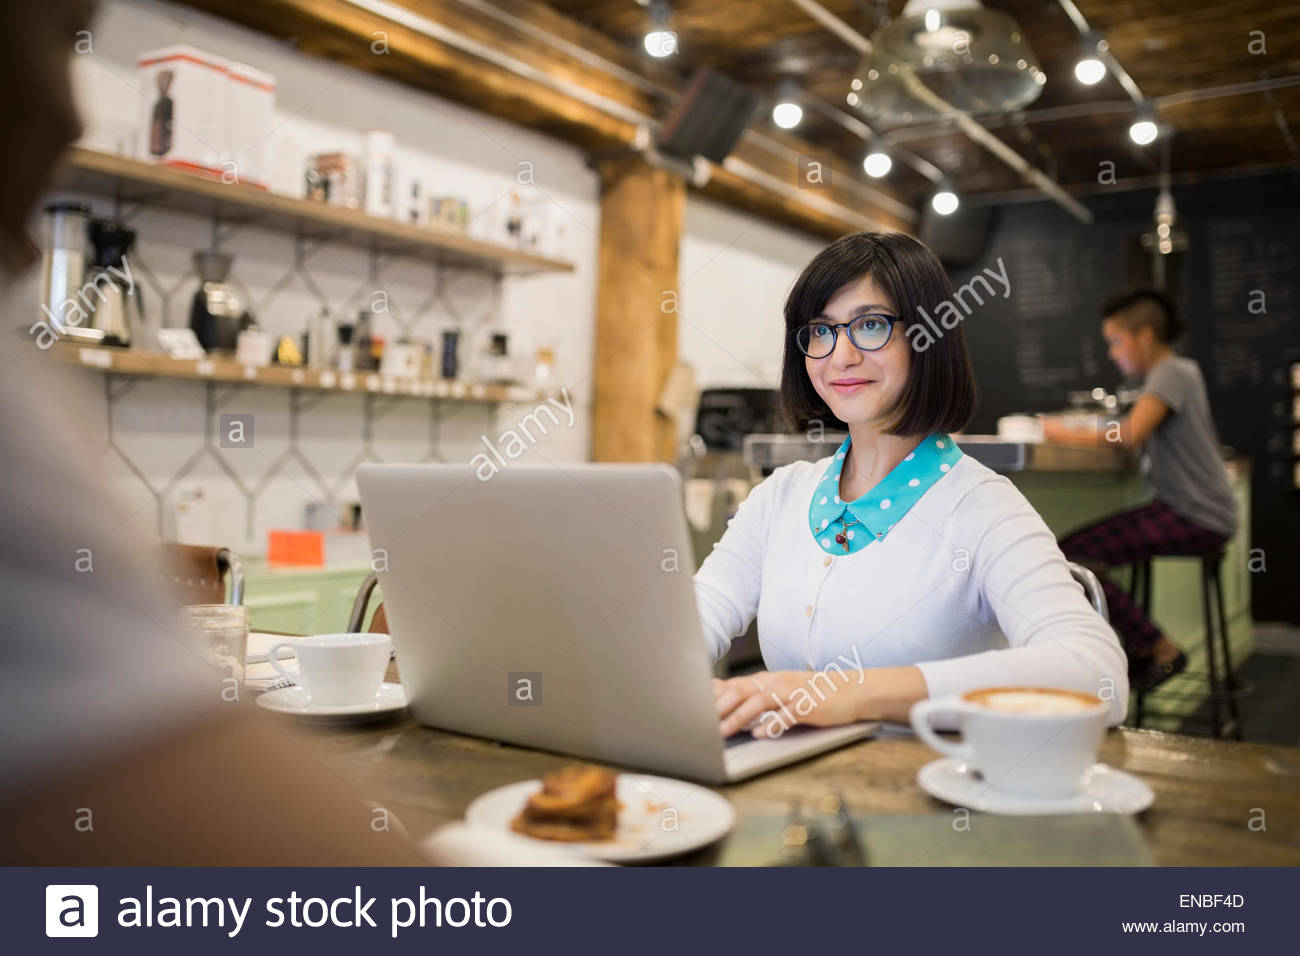 Woman working at laptop in cafe - Stock Image